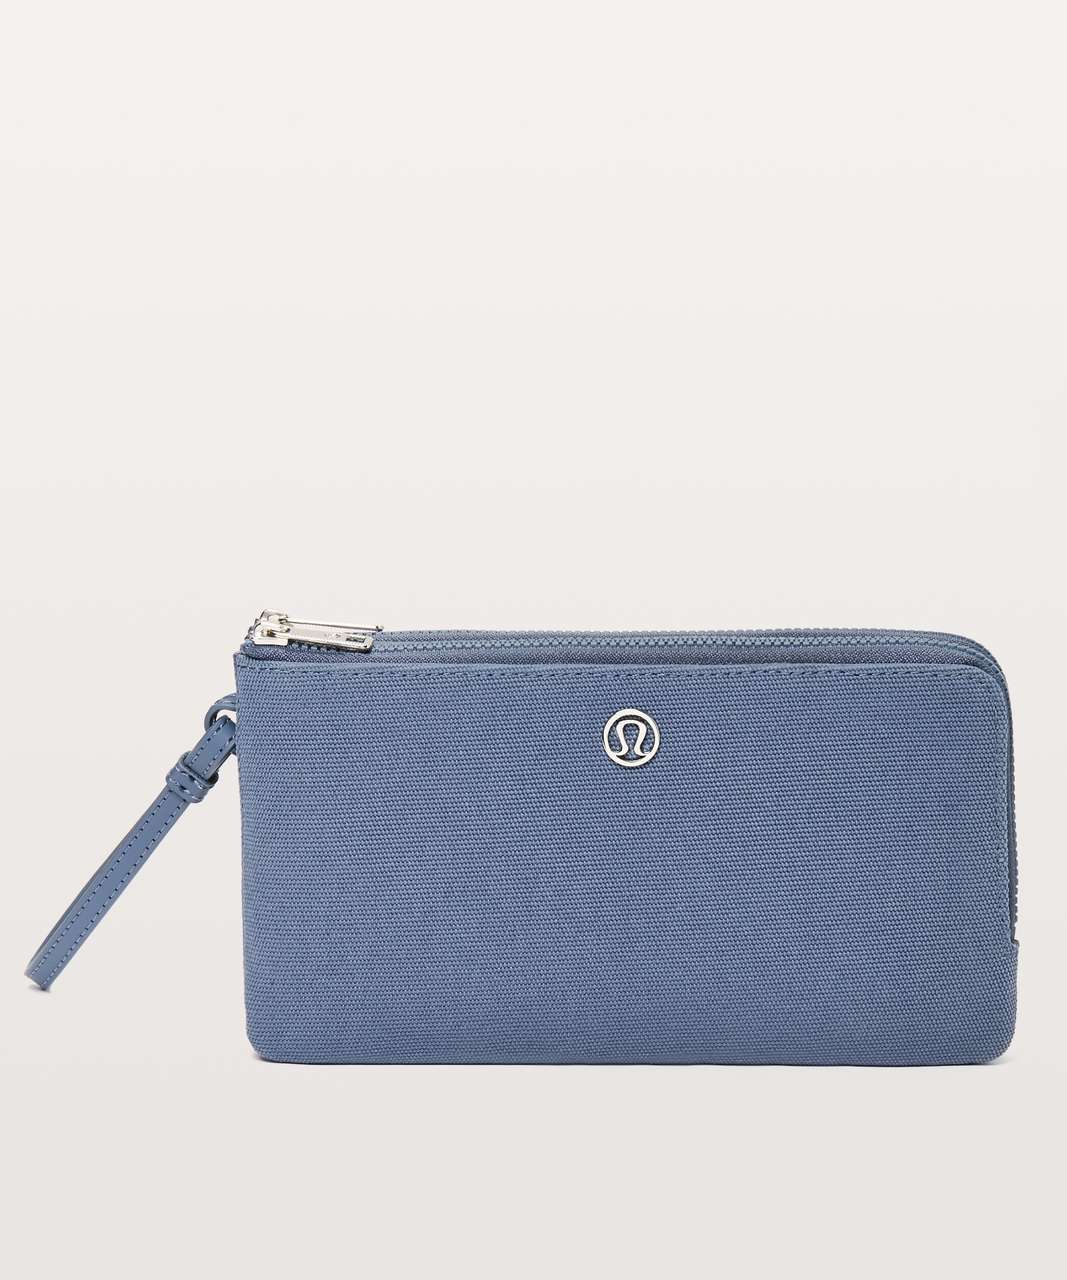 Lululemon Double Up Pouch - Shade